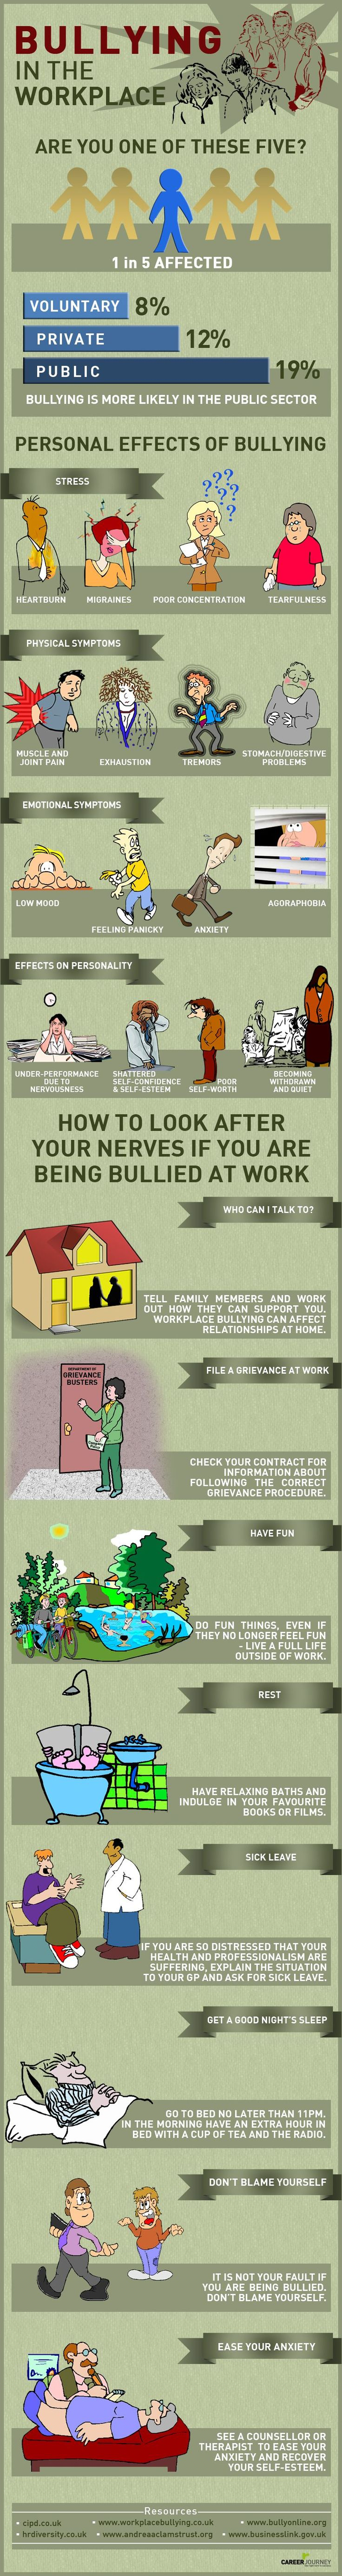 A GeekyMomma's Blog: Bullying: Not Just For Children Anymore